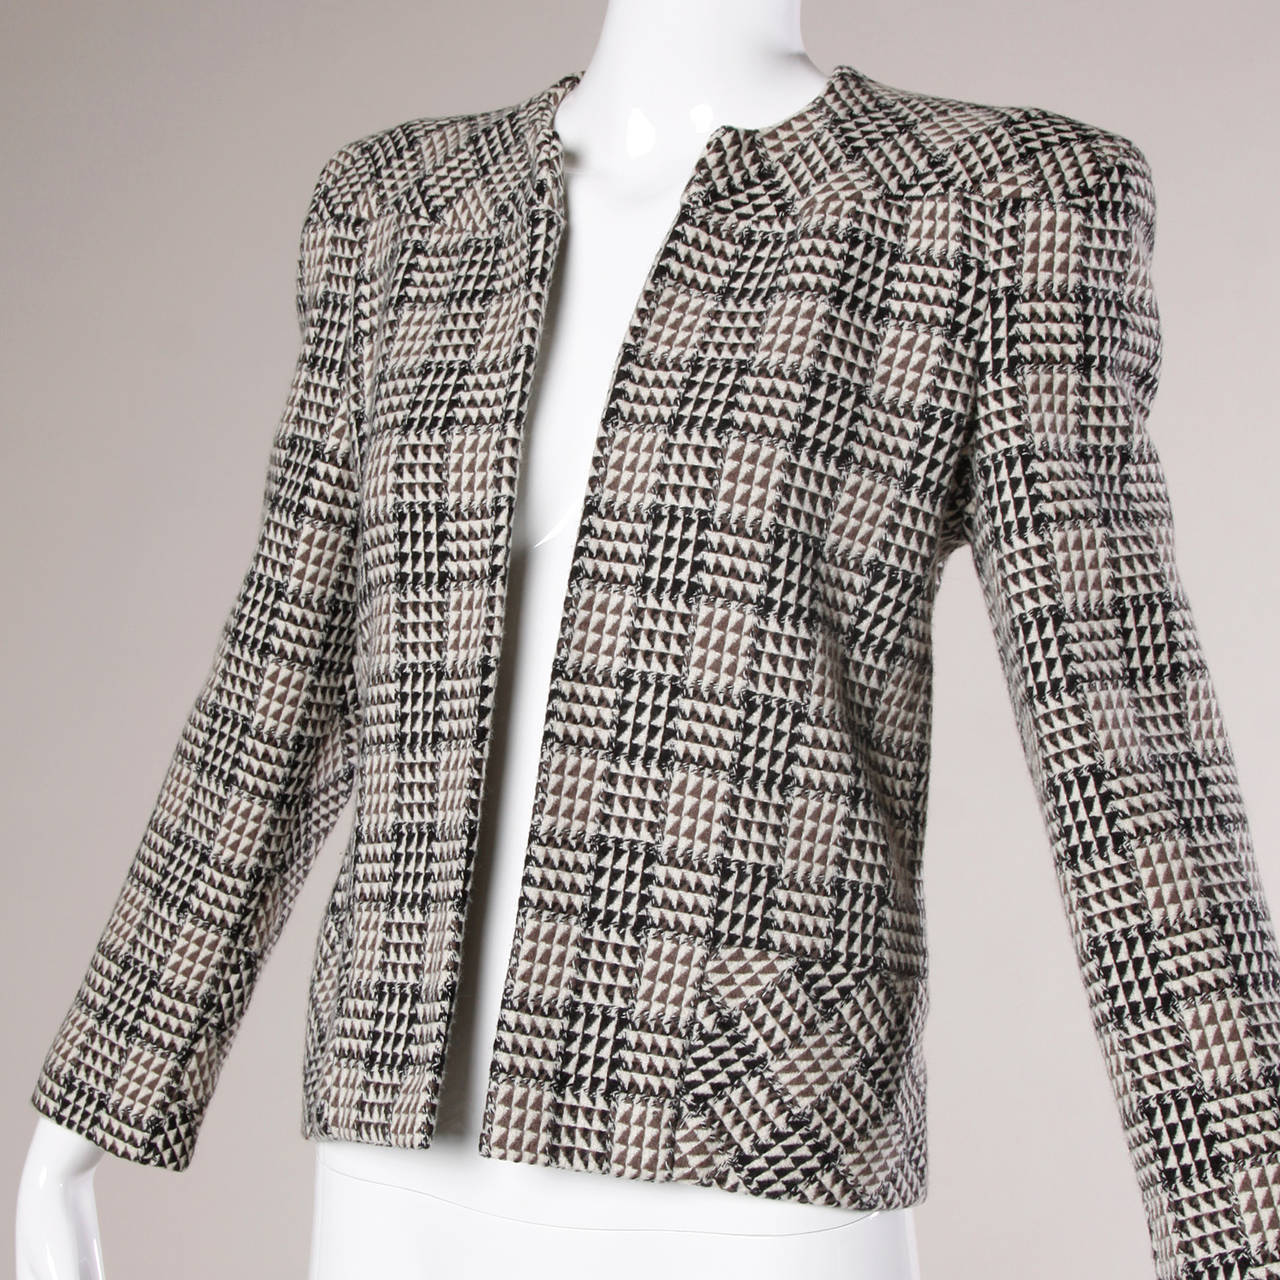 Carolina Herrera Vintage Wool Blazer Jacket with Bold Shoulders 4